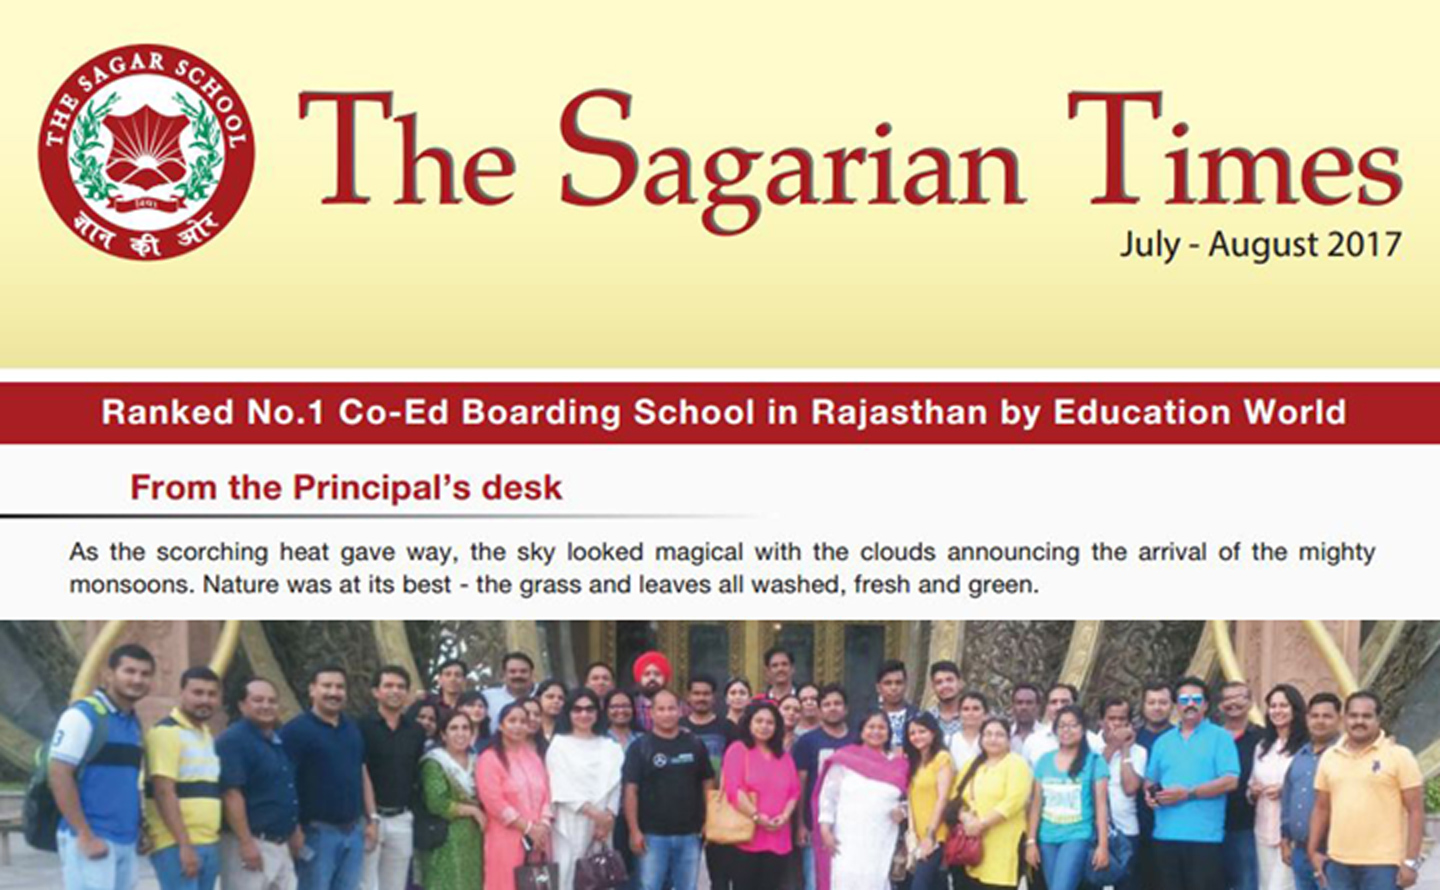 The Sagarian Times July - August 2017